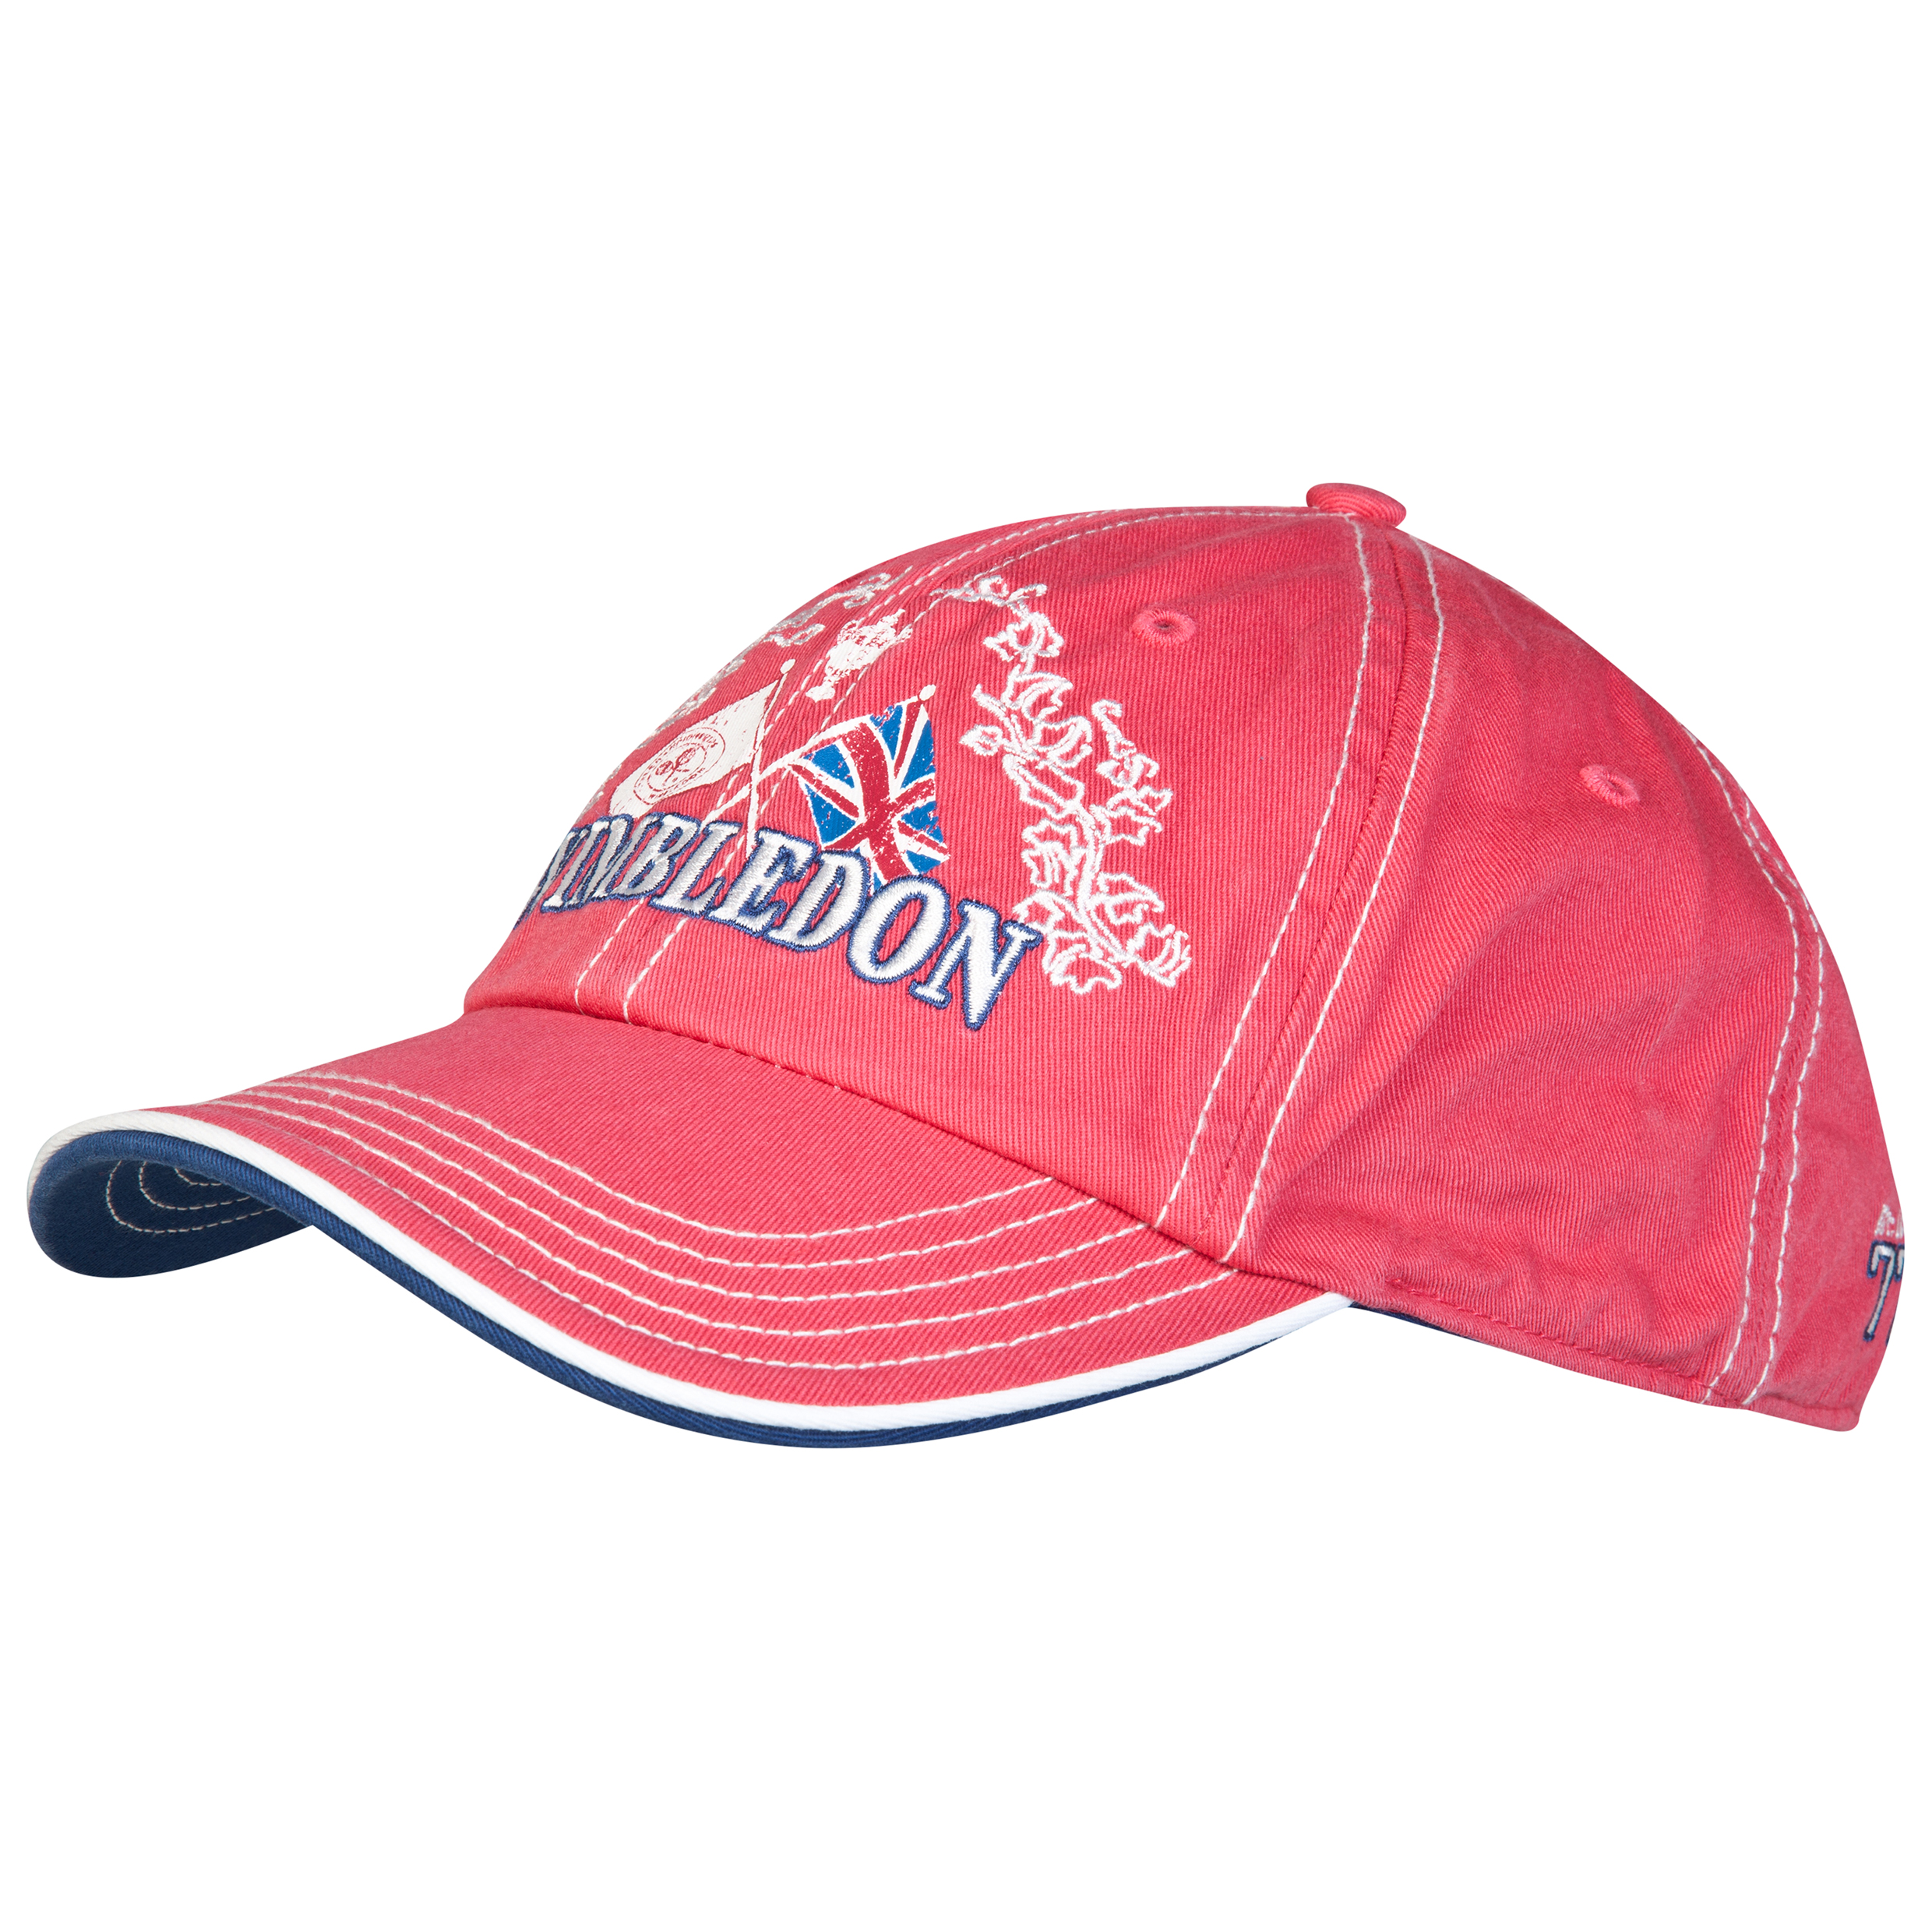 Wimbledon Flag Print Cap Red